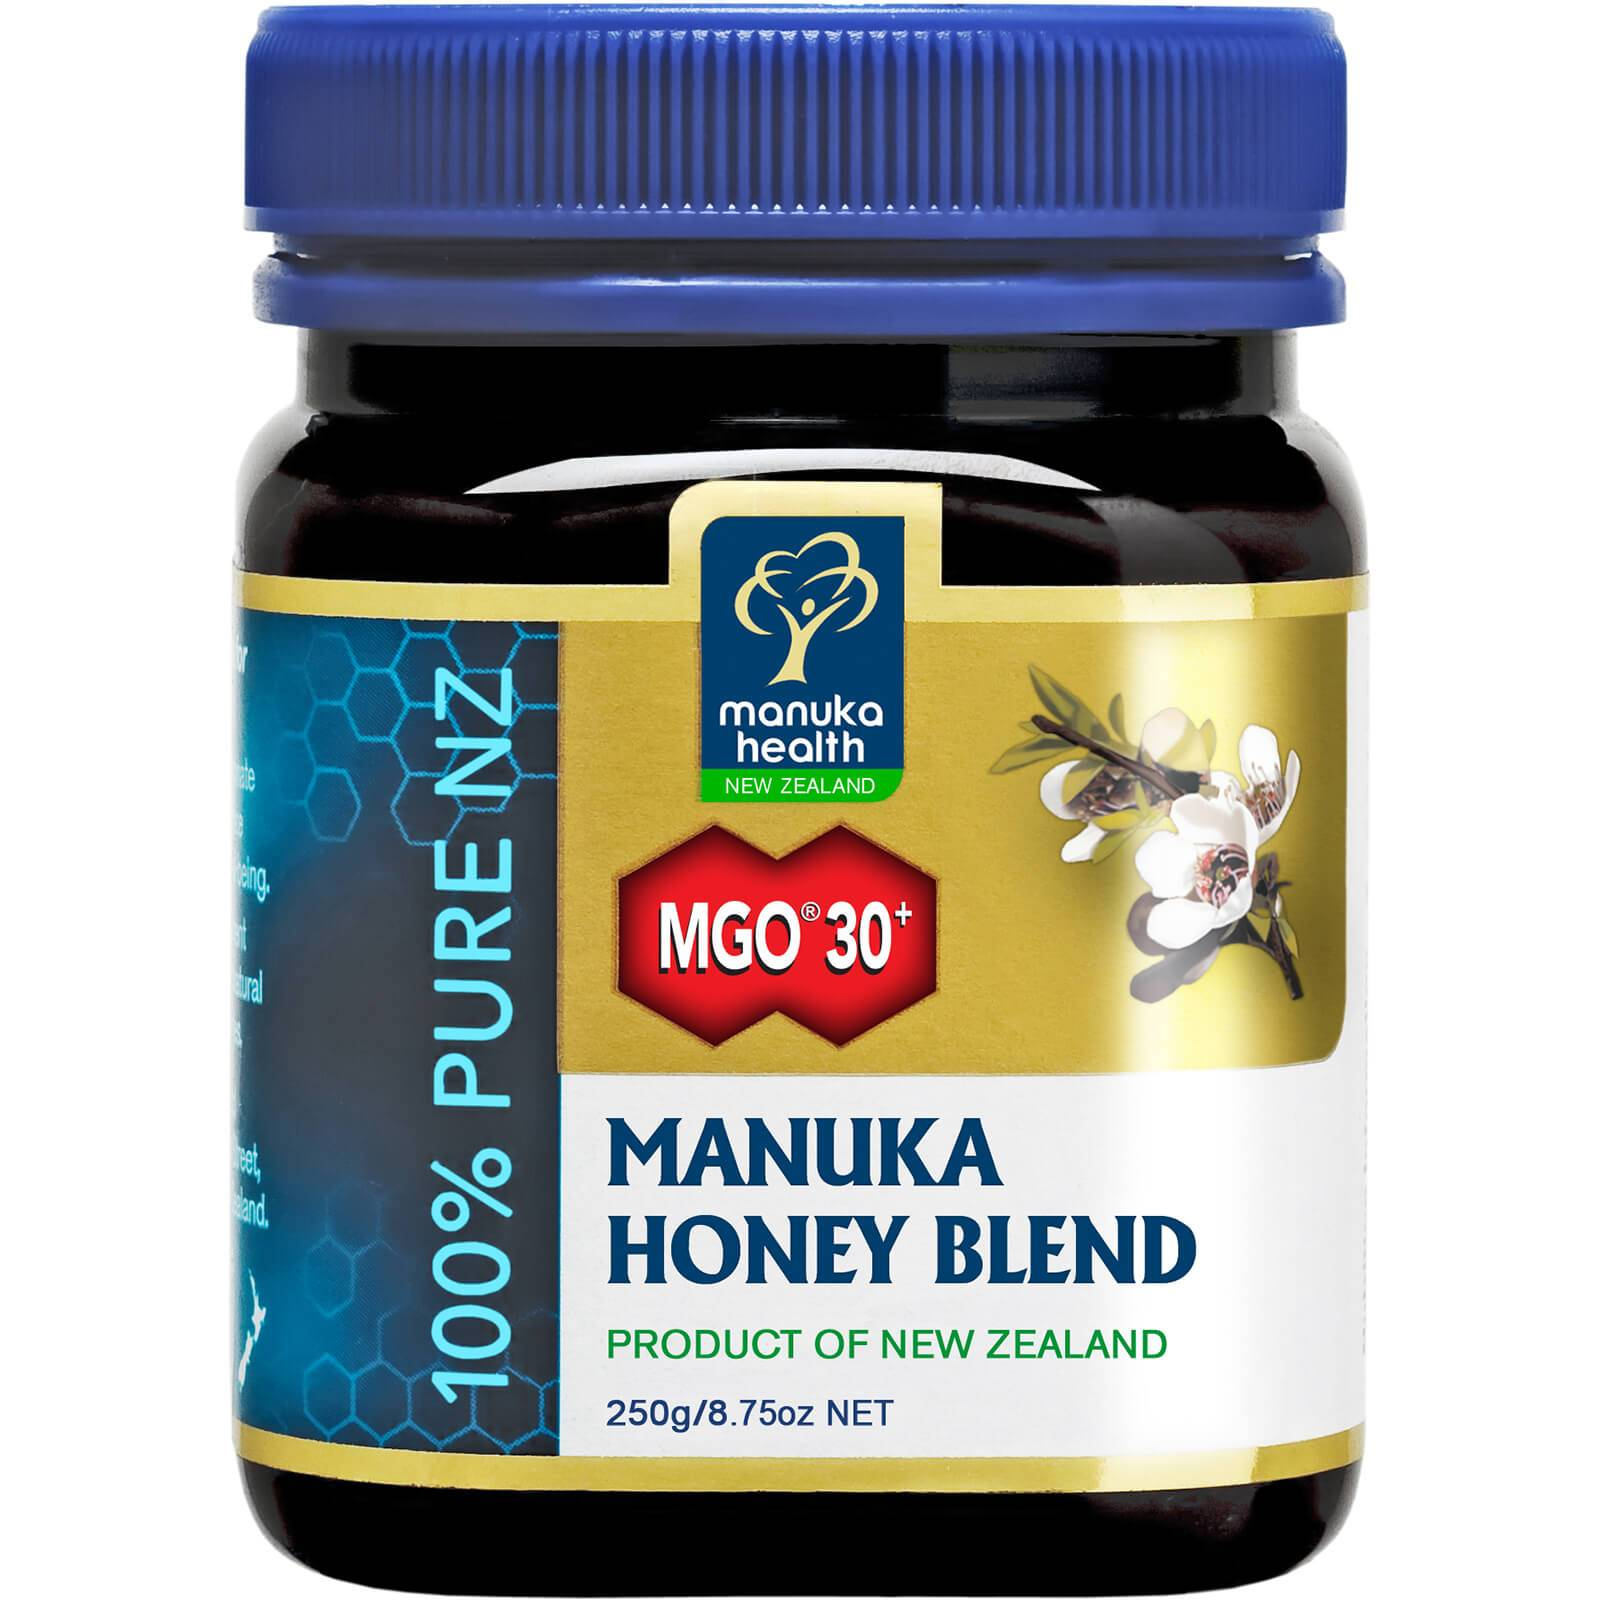 Manuka Health New Zealand Ltd MGO 30+ Manuka Honey Blend - 250G